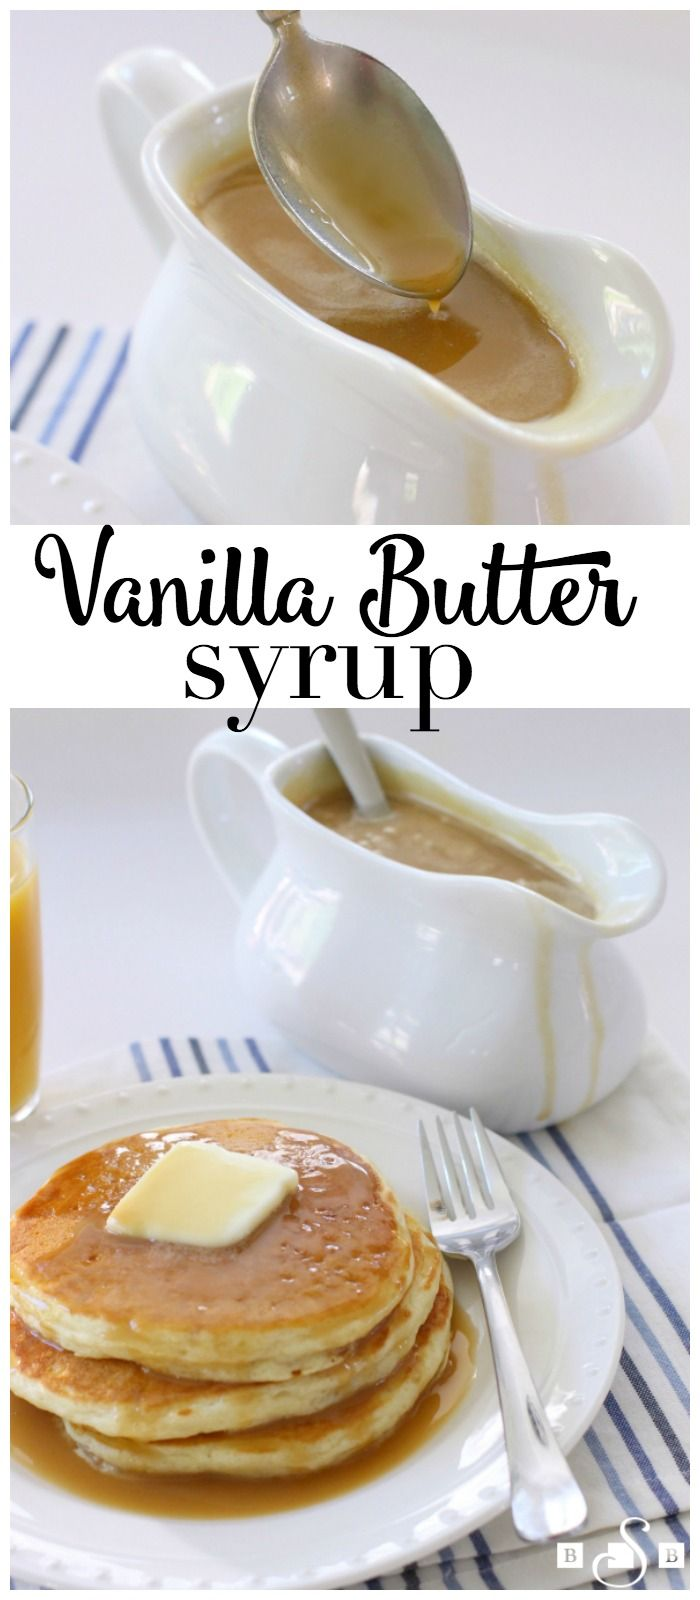 Homemade Vanilla Butter Syrup - making your own syrup is so easy and it tastes SO MUCH BETTER than store bought! Love this recipe from Butter With A Side of Bread